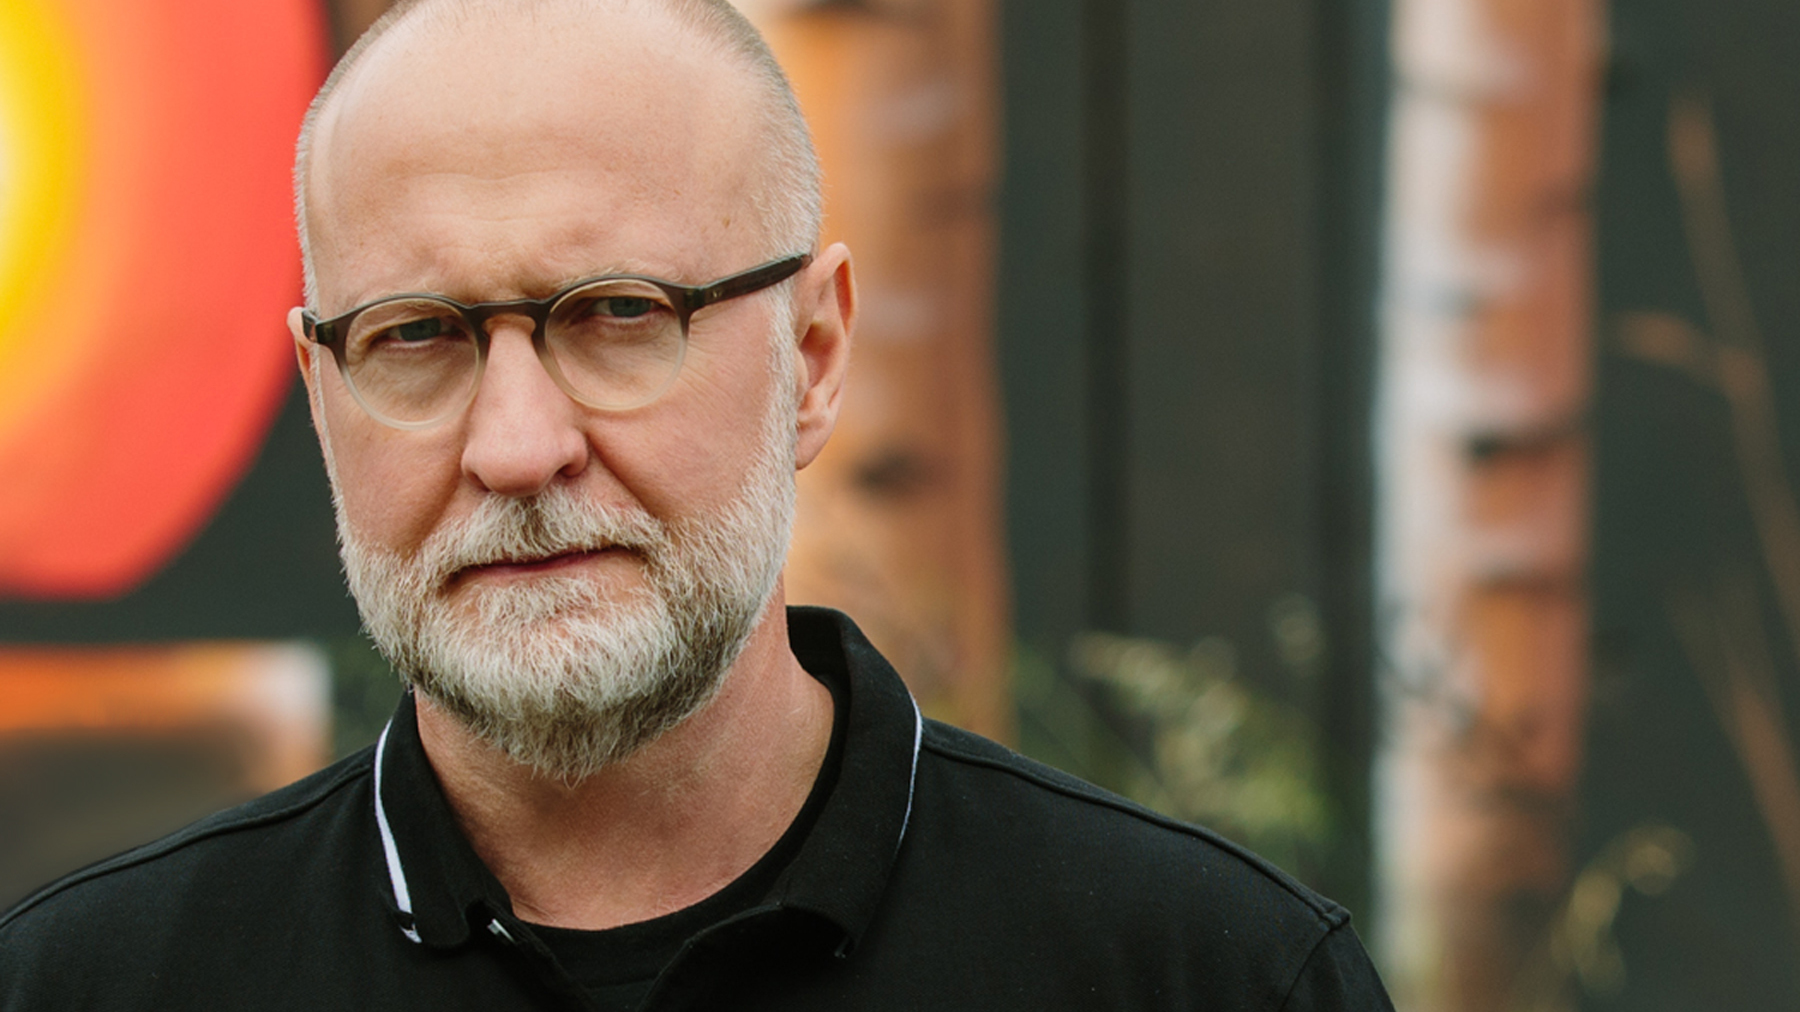 Bob Mould Reflects On Albums He Loved As A Youth With 'Sunshine Rock'